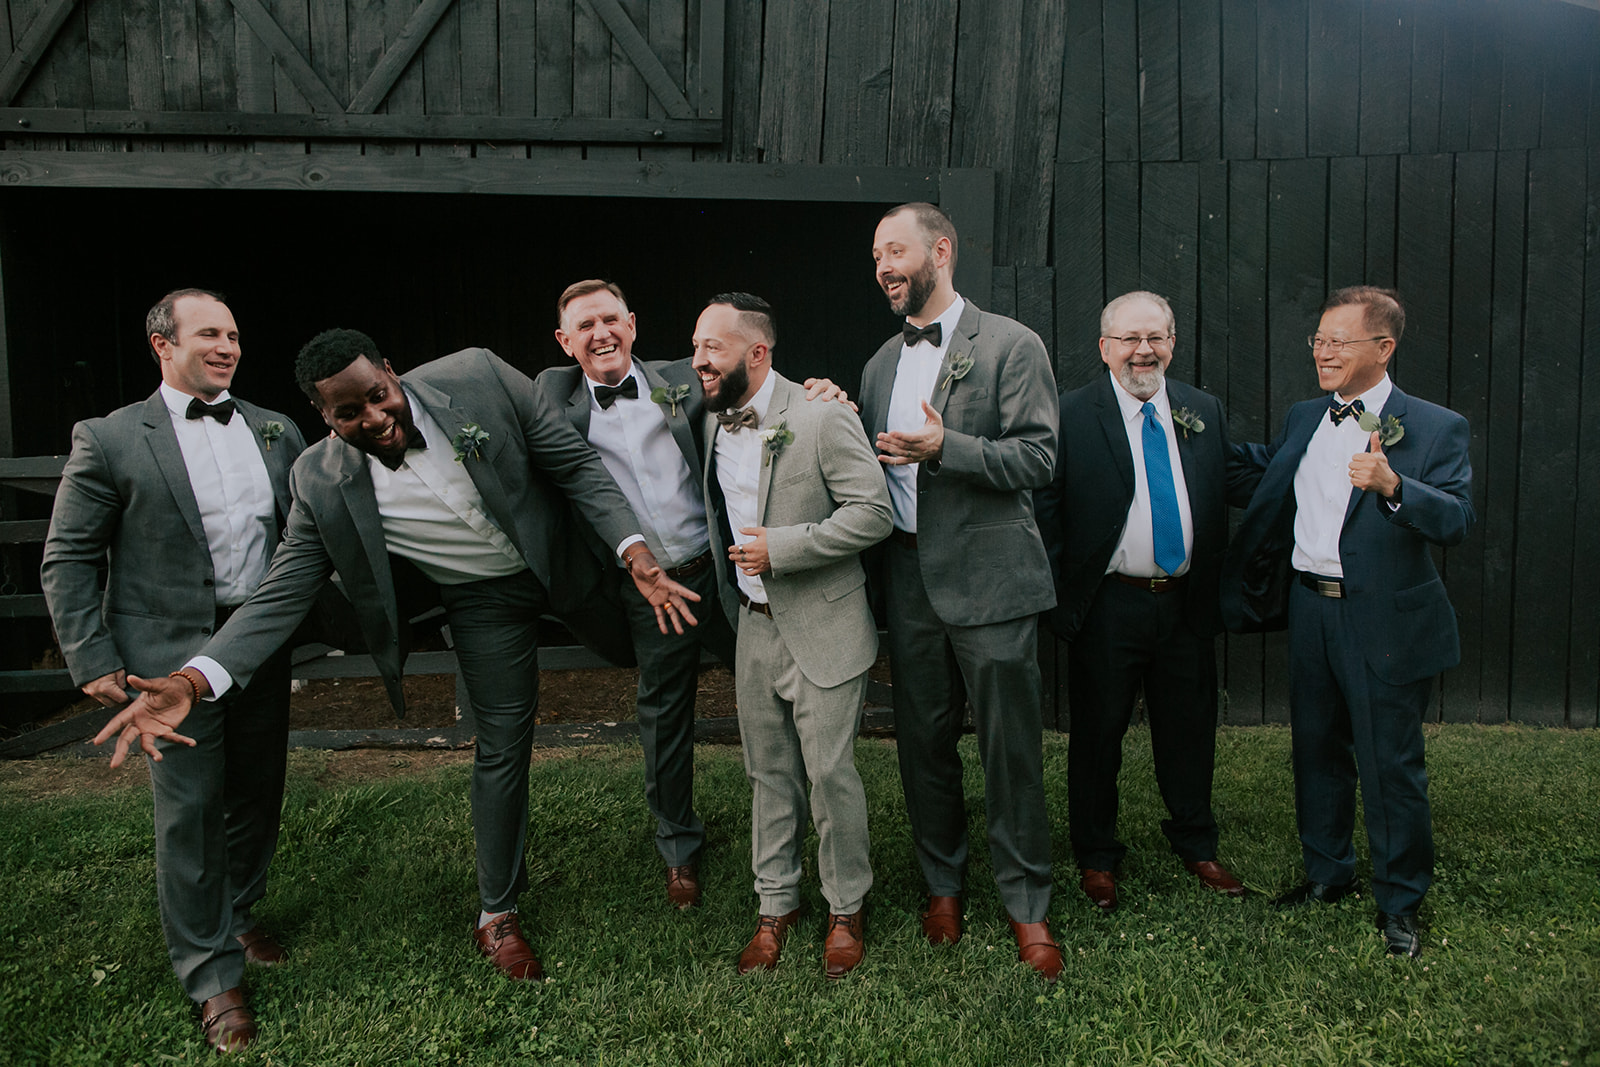 Groom and groomsmen: Summer Soiree at Cedarwood Weddings featured on Nashville Bride Guide